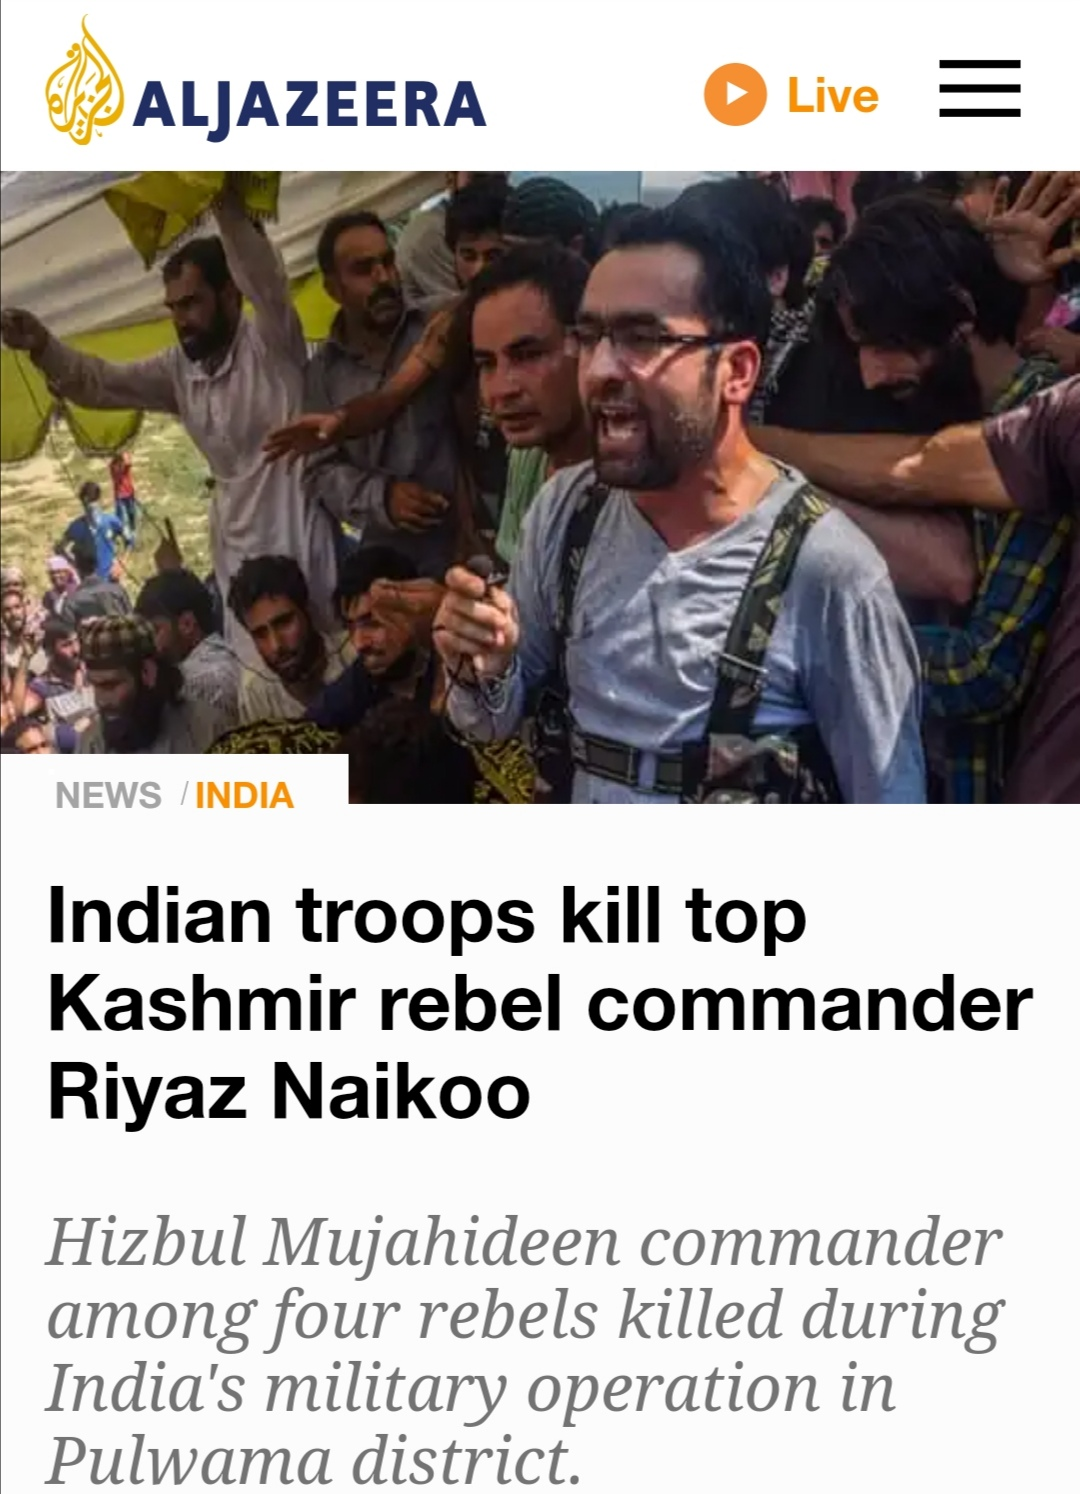 false reporting kashmir martyrs azaadi freedom fighters security forces riyaz naikoo terrorist hizbul mujahidin Hm terror outfit encounter indian army lutyen media presstitutes International media